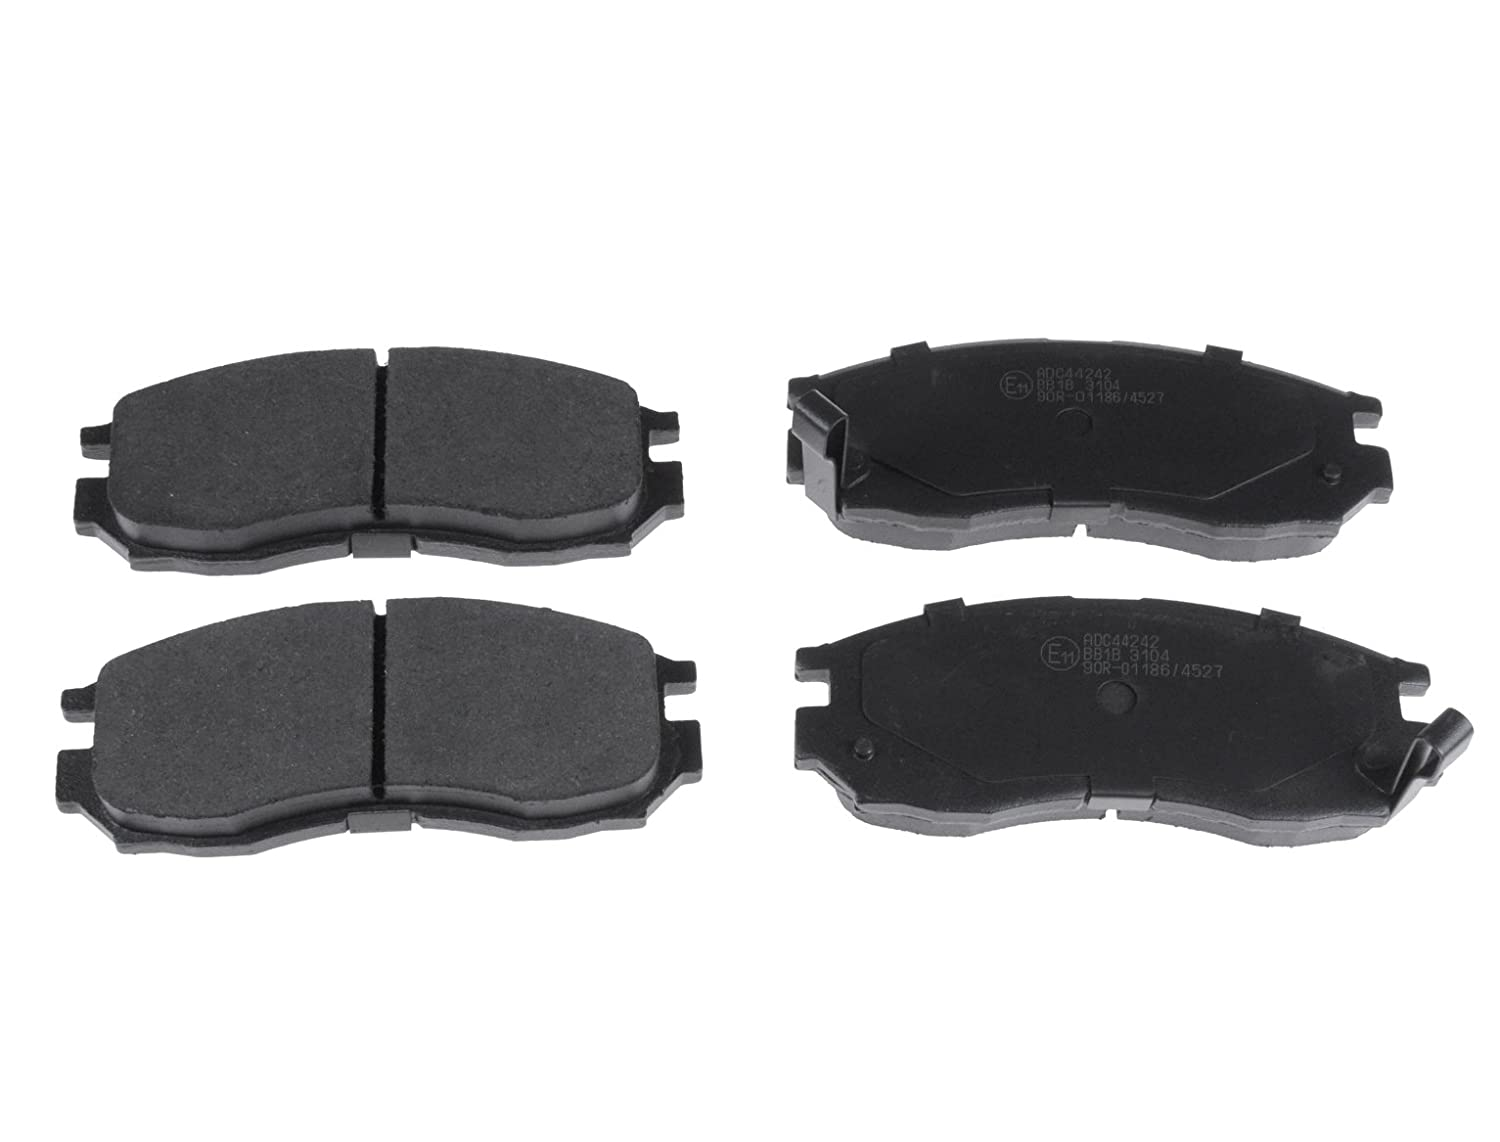 Blue Print ADC44242 Brake Pad Set pack of four